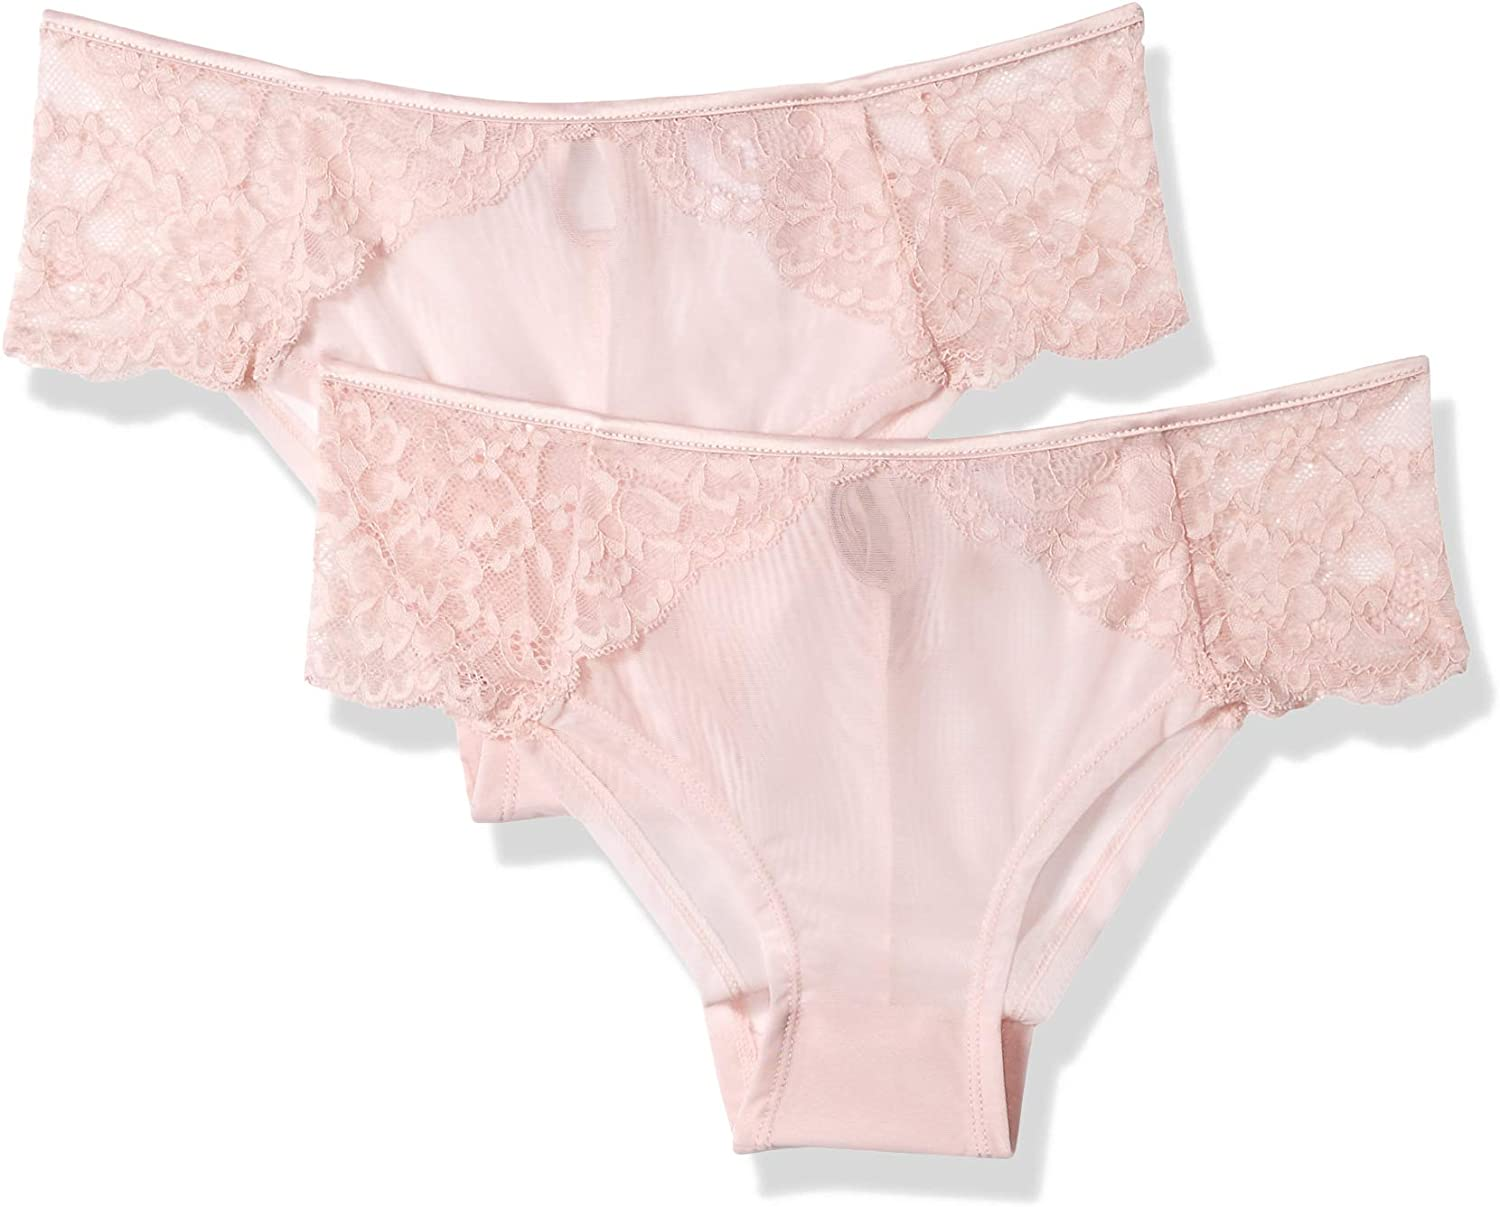 Amazon Brand - Mae Women's Lace and Satin Hipster Underwear, 2 Pack